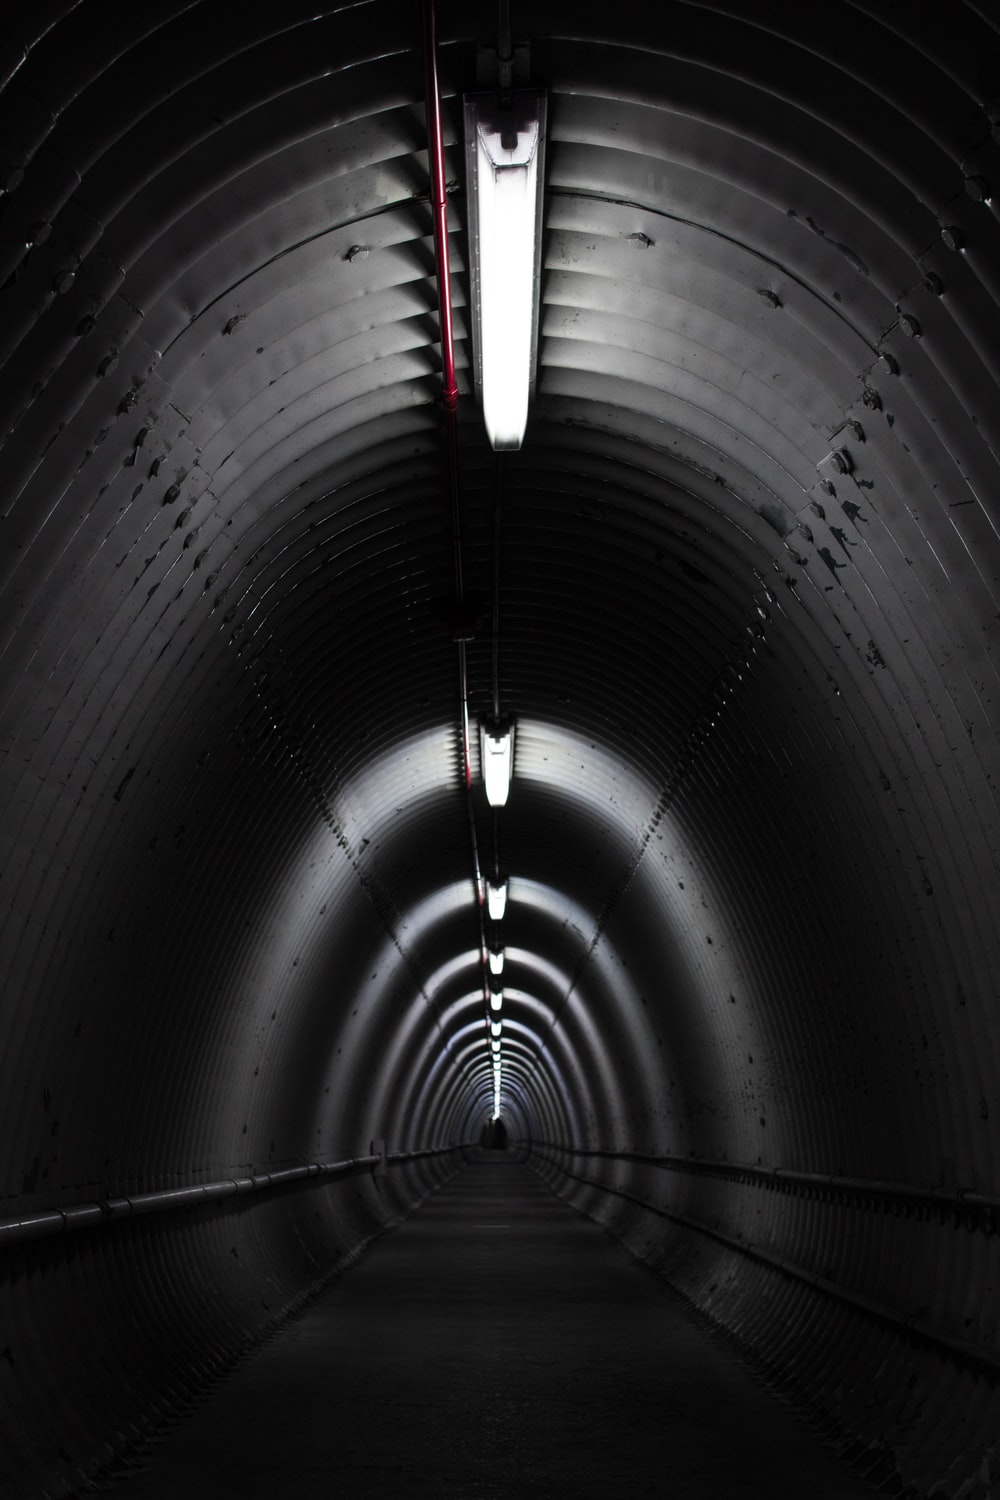 gray concrete tunnel with light